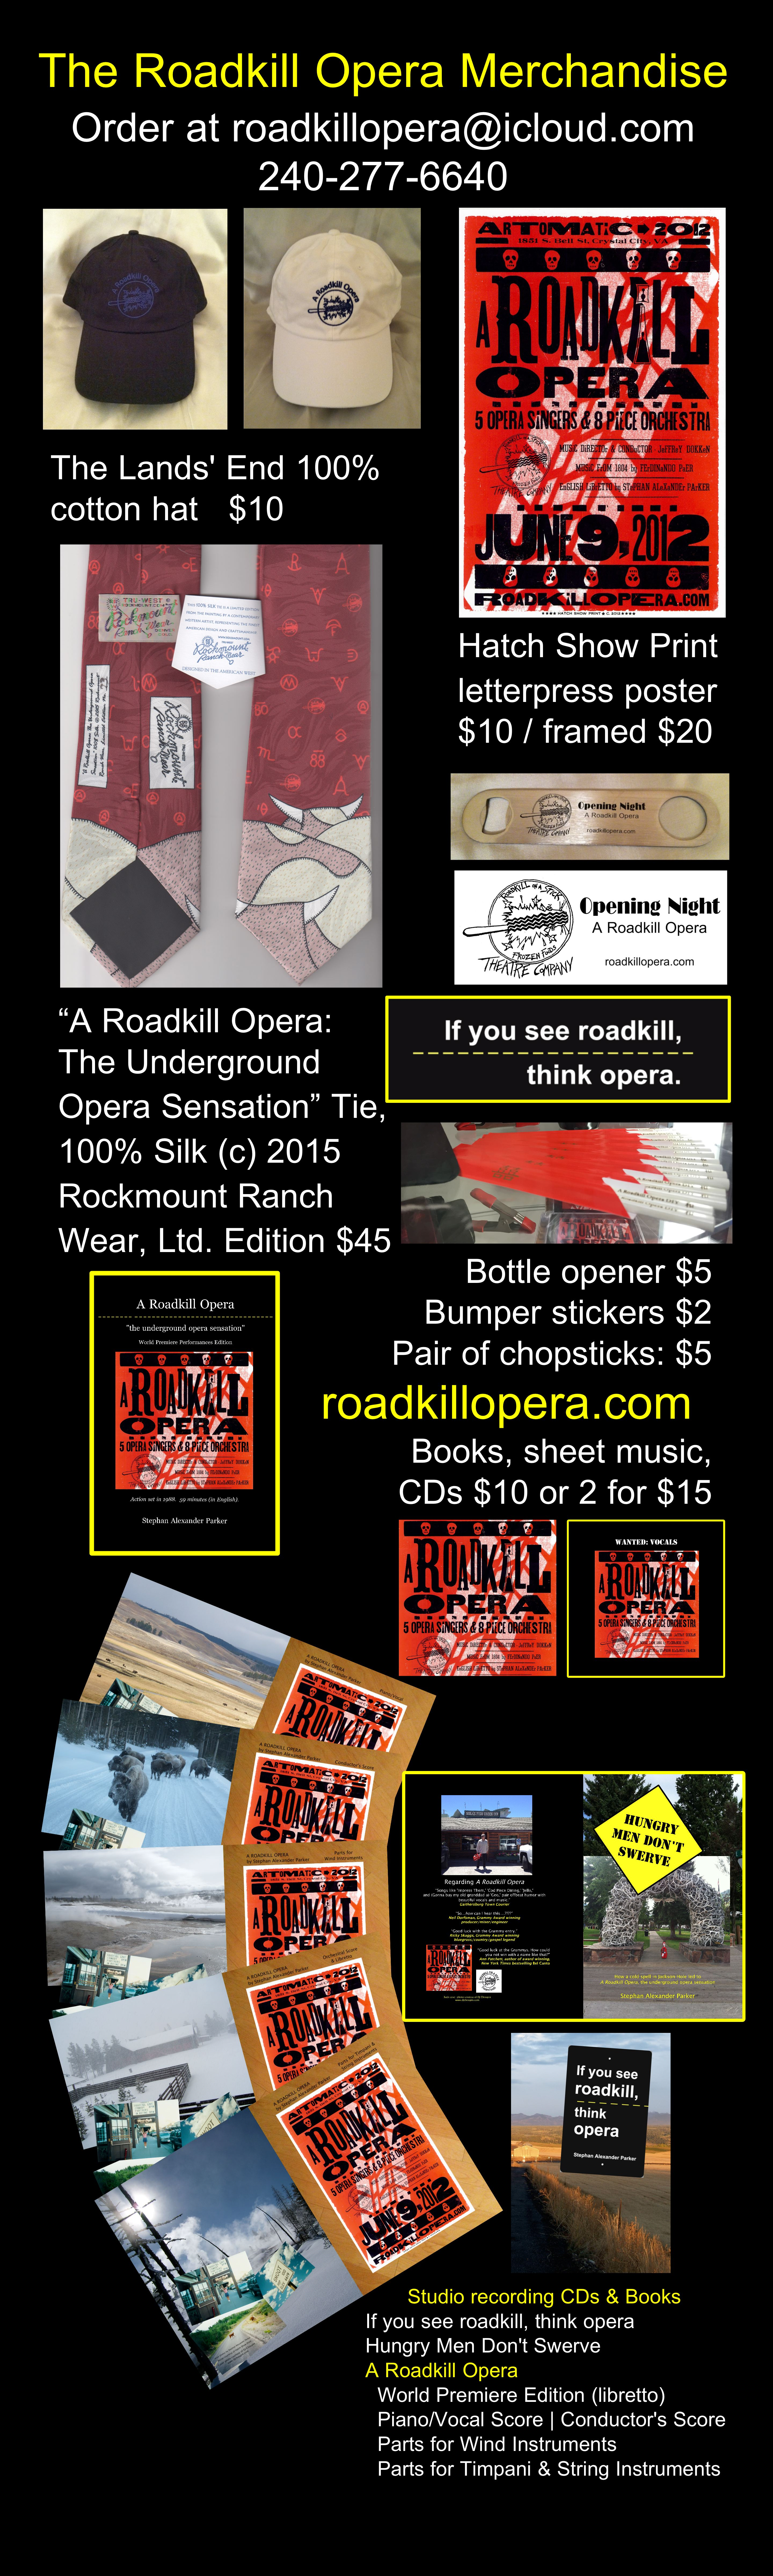 Photo of the Roadkill Opera Merchandise with special pricing